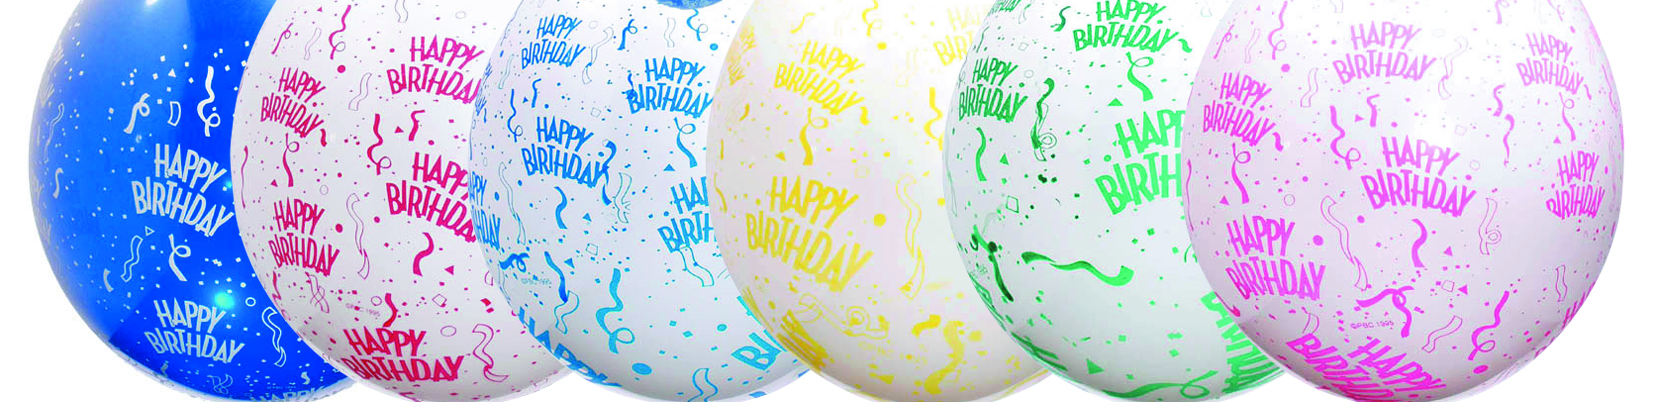 "18"" Verpackungsballon  Happy Birthday Sort."